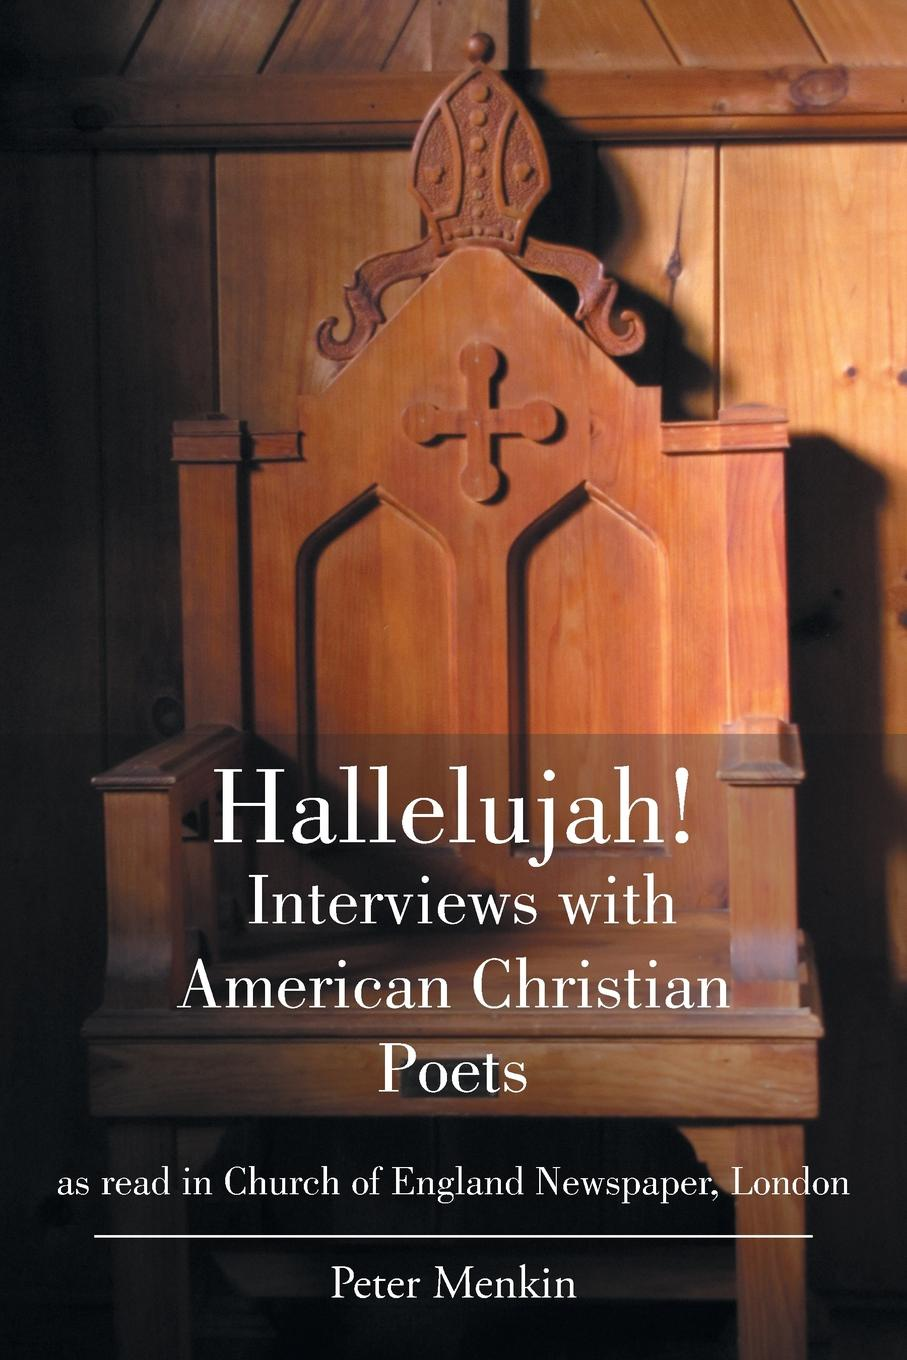 Peter Menkin Obl Cam OSB Hallelujah! Interviews with American Christian Poets as read in Church of England Newspaper, London. London